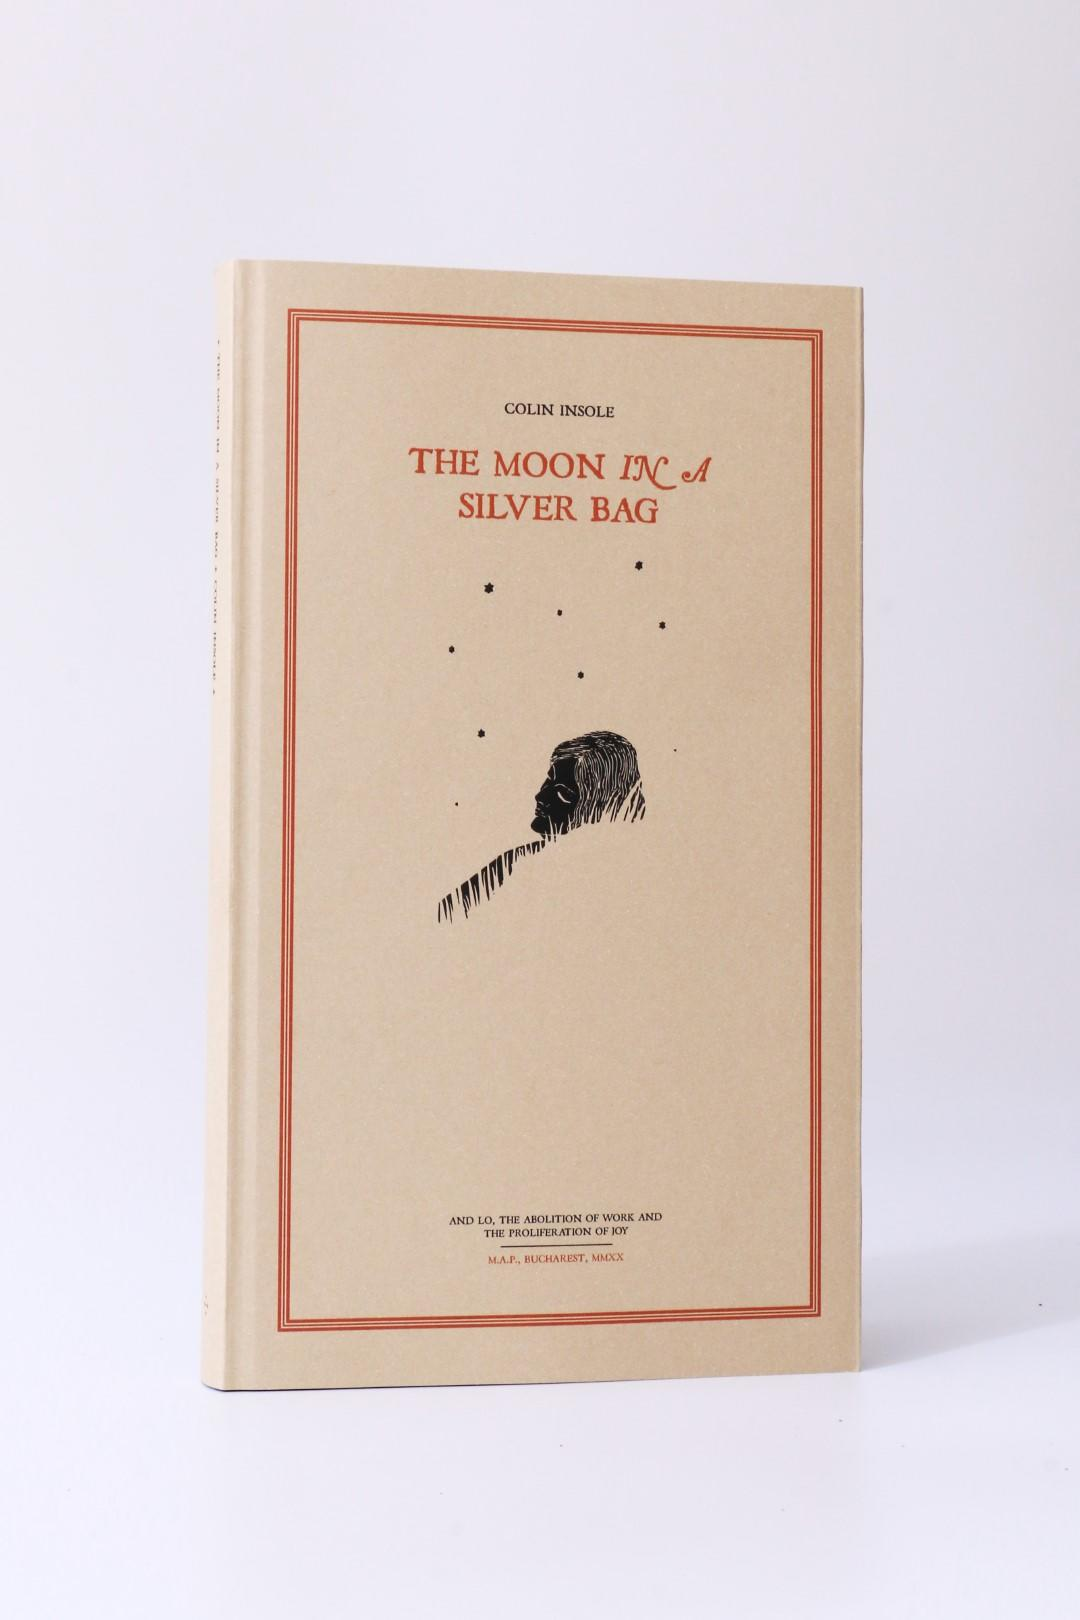 Colin Insole - The Moon in a Silver Bag - Mount Abraxas, 2020 [2021 stated on copyright page], Limited Edition.